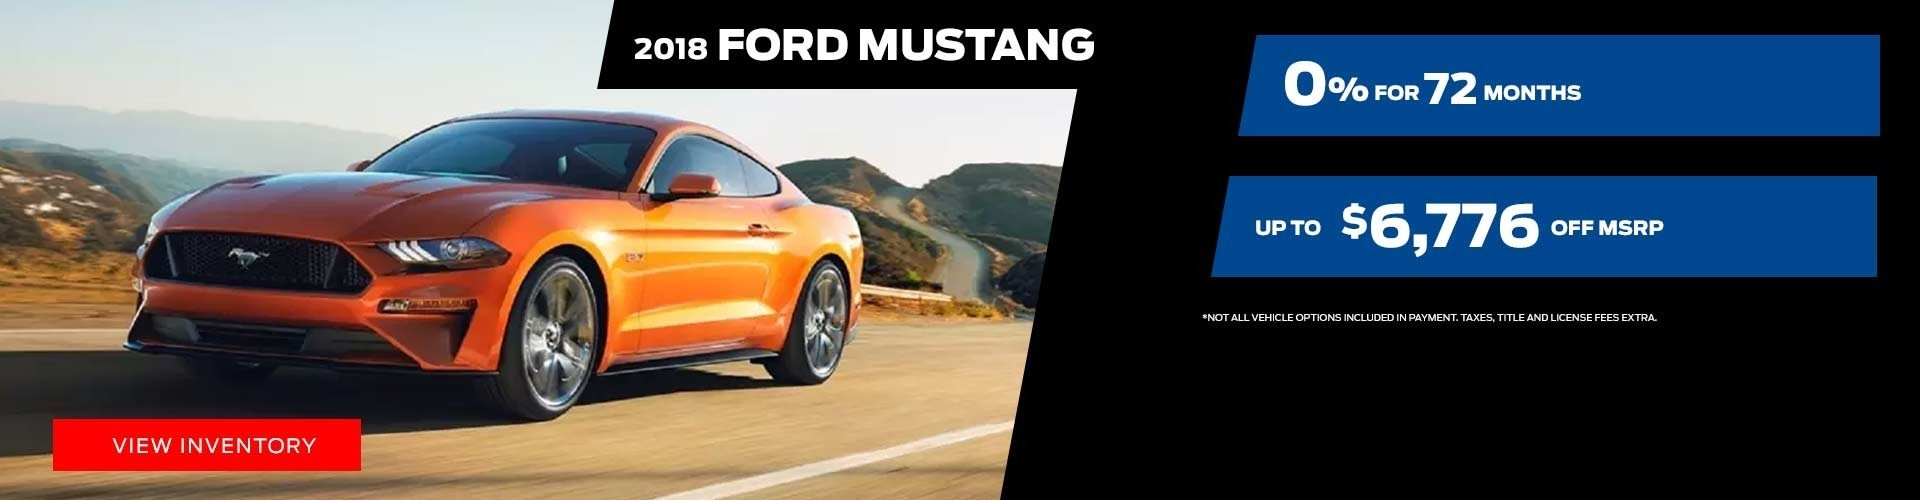 2018 Ford Mustang Special Offer